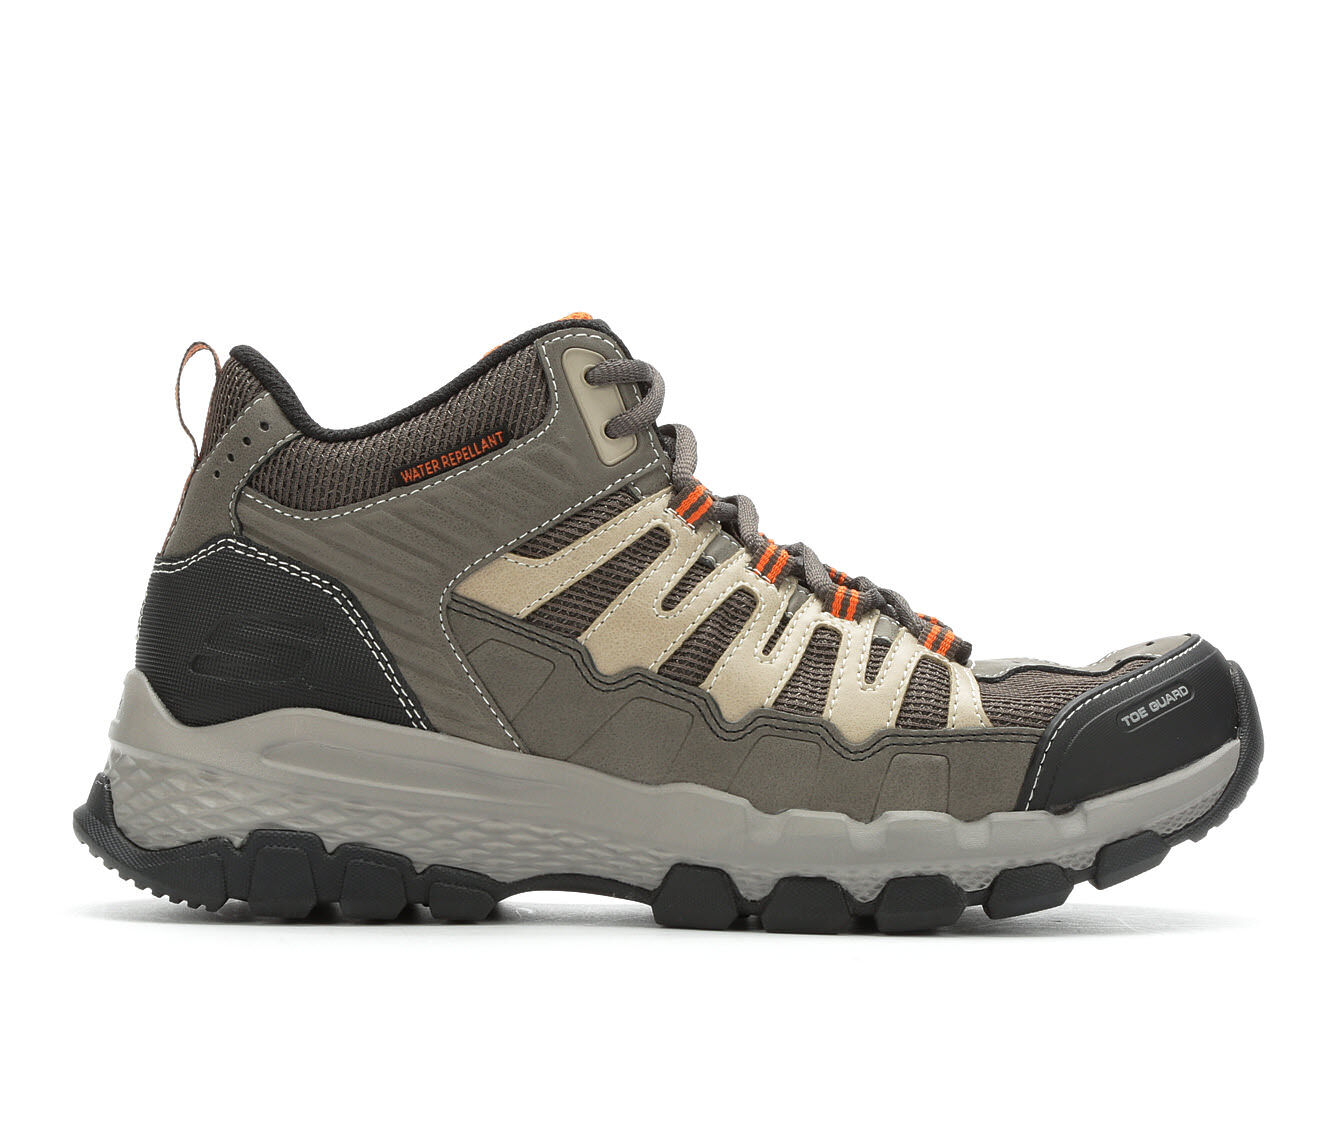 purchase online best wholesale for sale Men's Skechers Outland 2.0 51587 Hiking Boots deals cheap price with paypal for sale with paypal low price JjDR3Lida